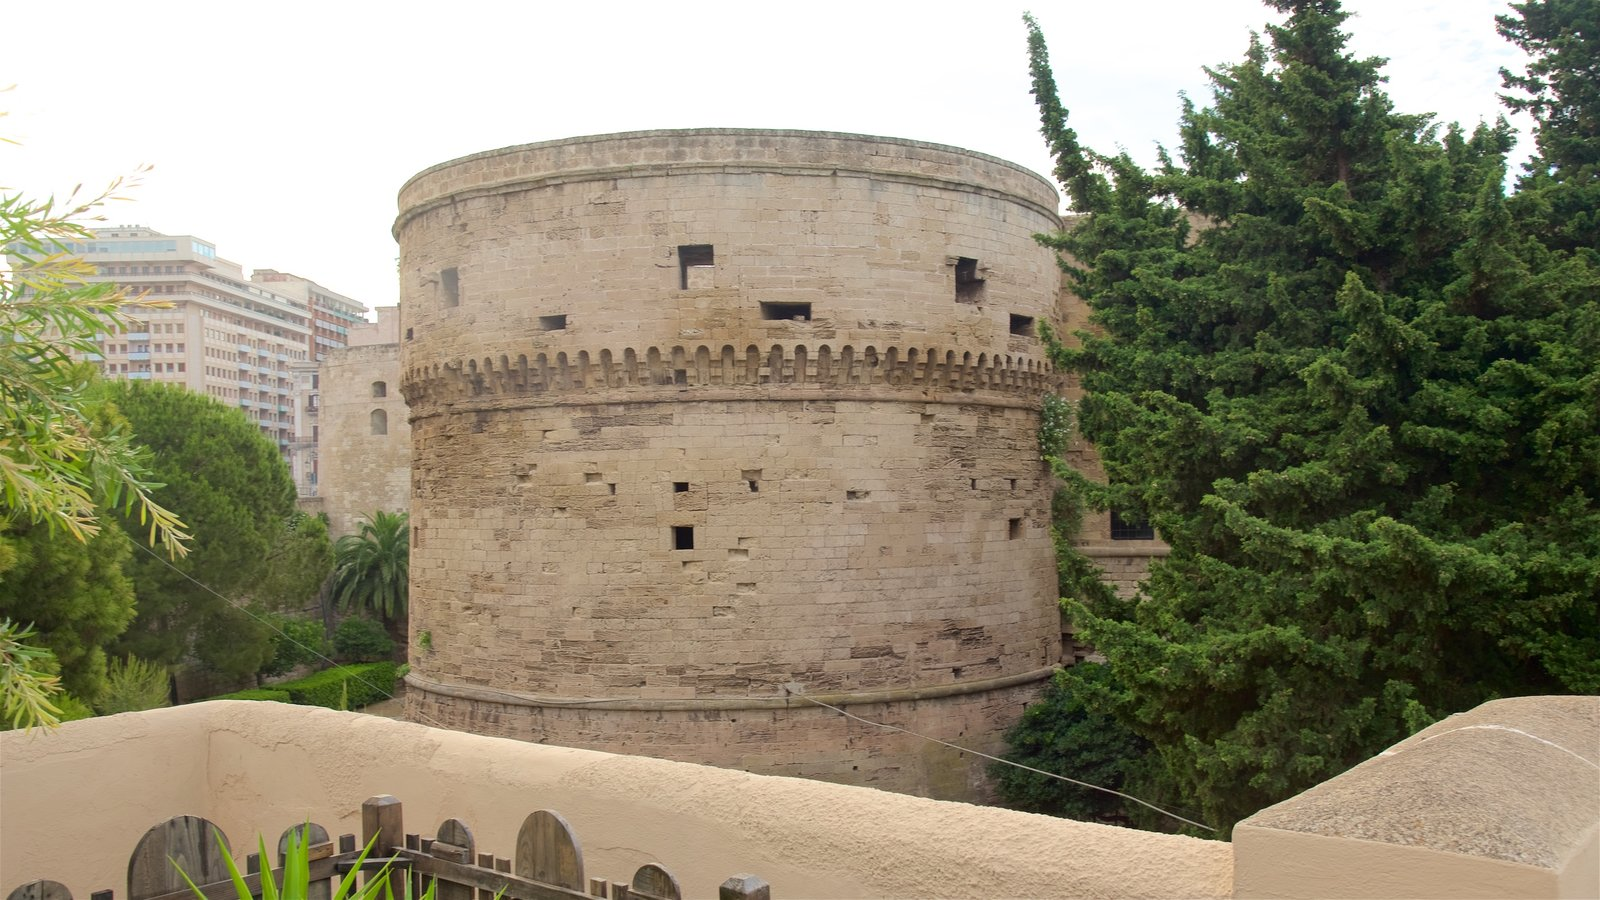 Aragonese Castle featuring a castle and heritage elements